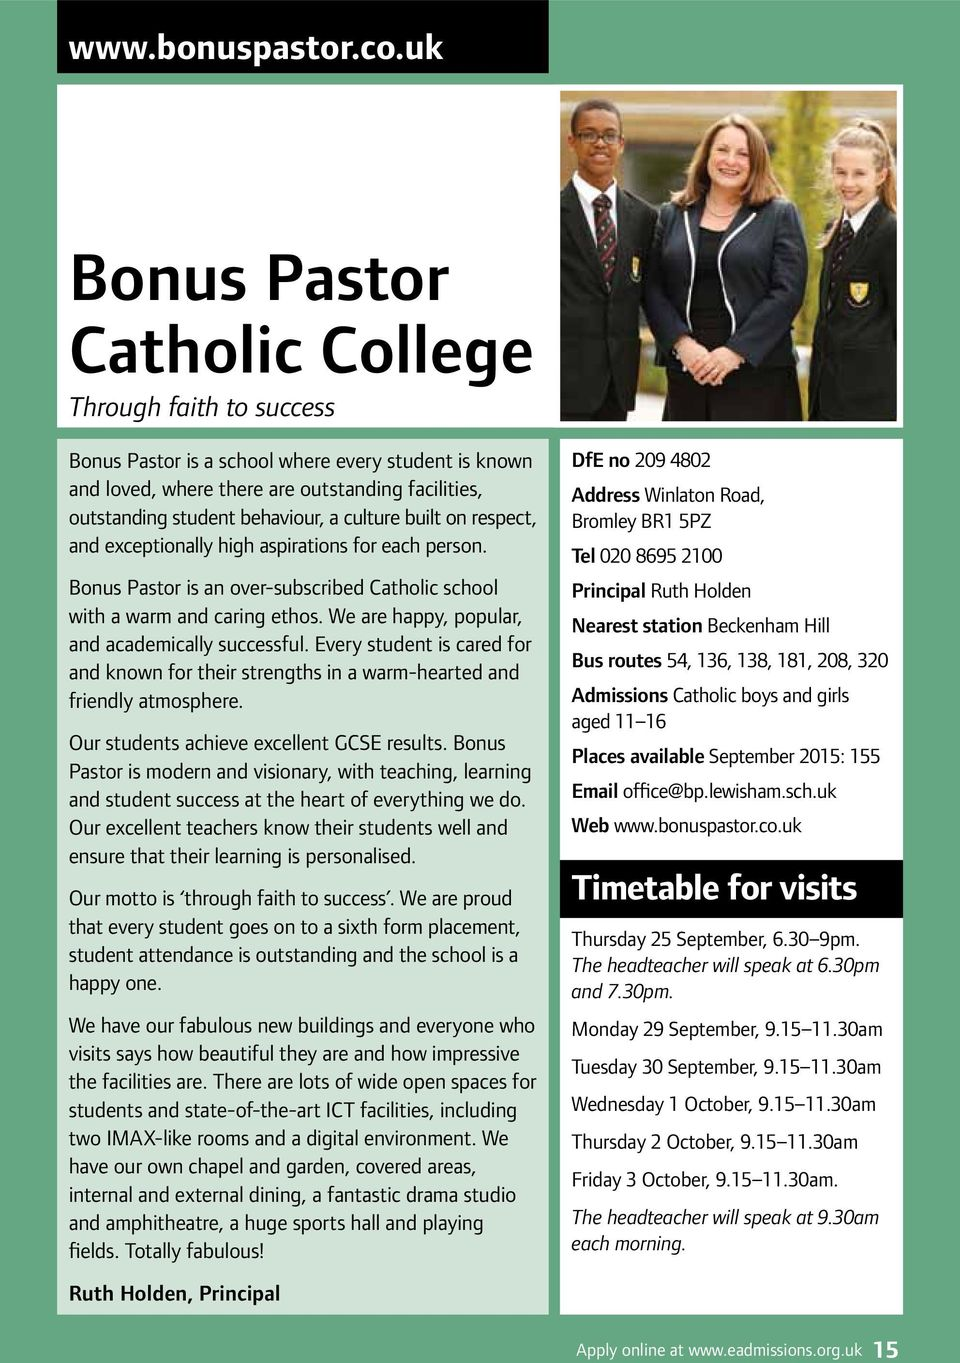 culture built on respect, and exceptionally high aspirations for each person. Bonus Pastor is an over-subscribed Catholic school with a warm and caring ethos.